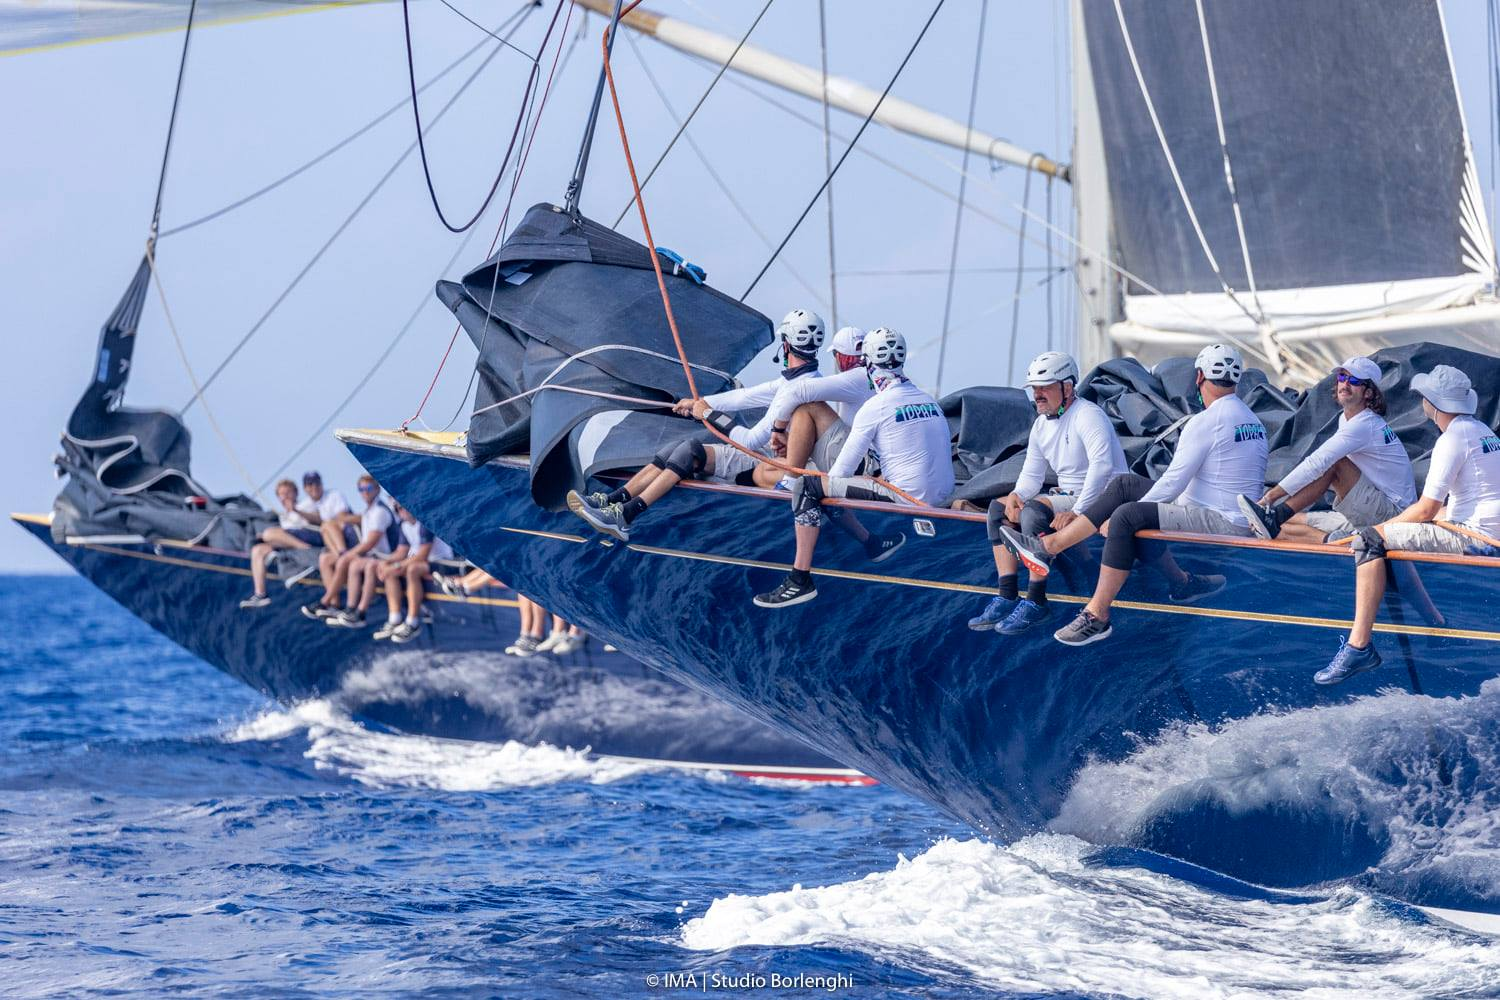 Topaz and Velsheda side by side downwind. Crew sitting on the side.